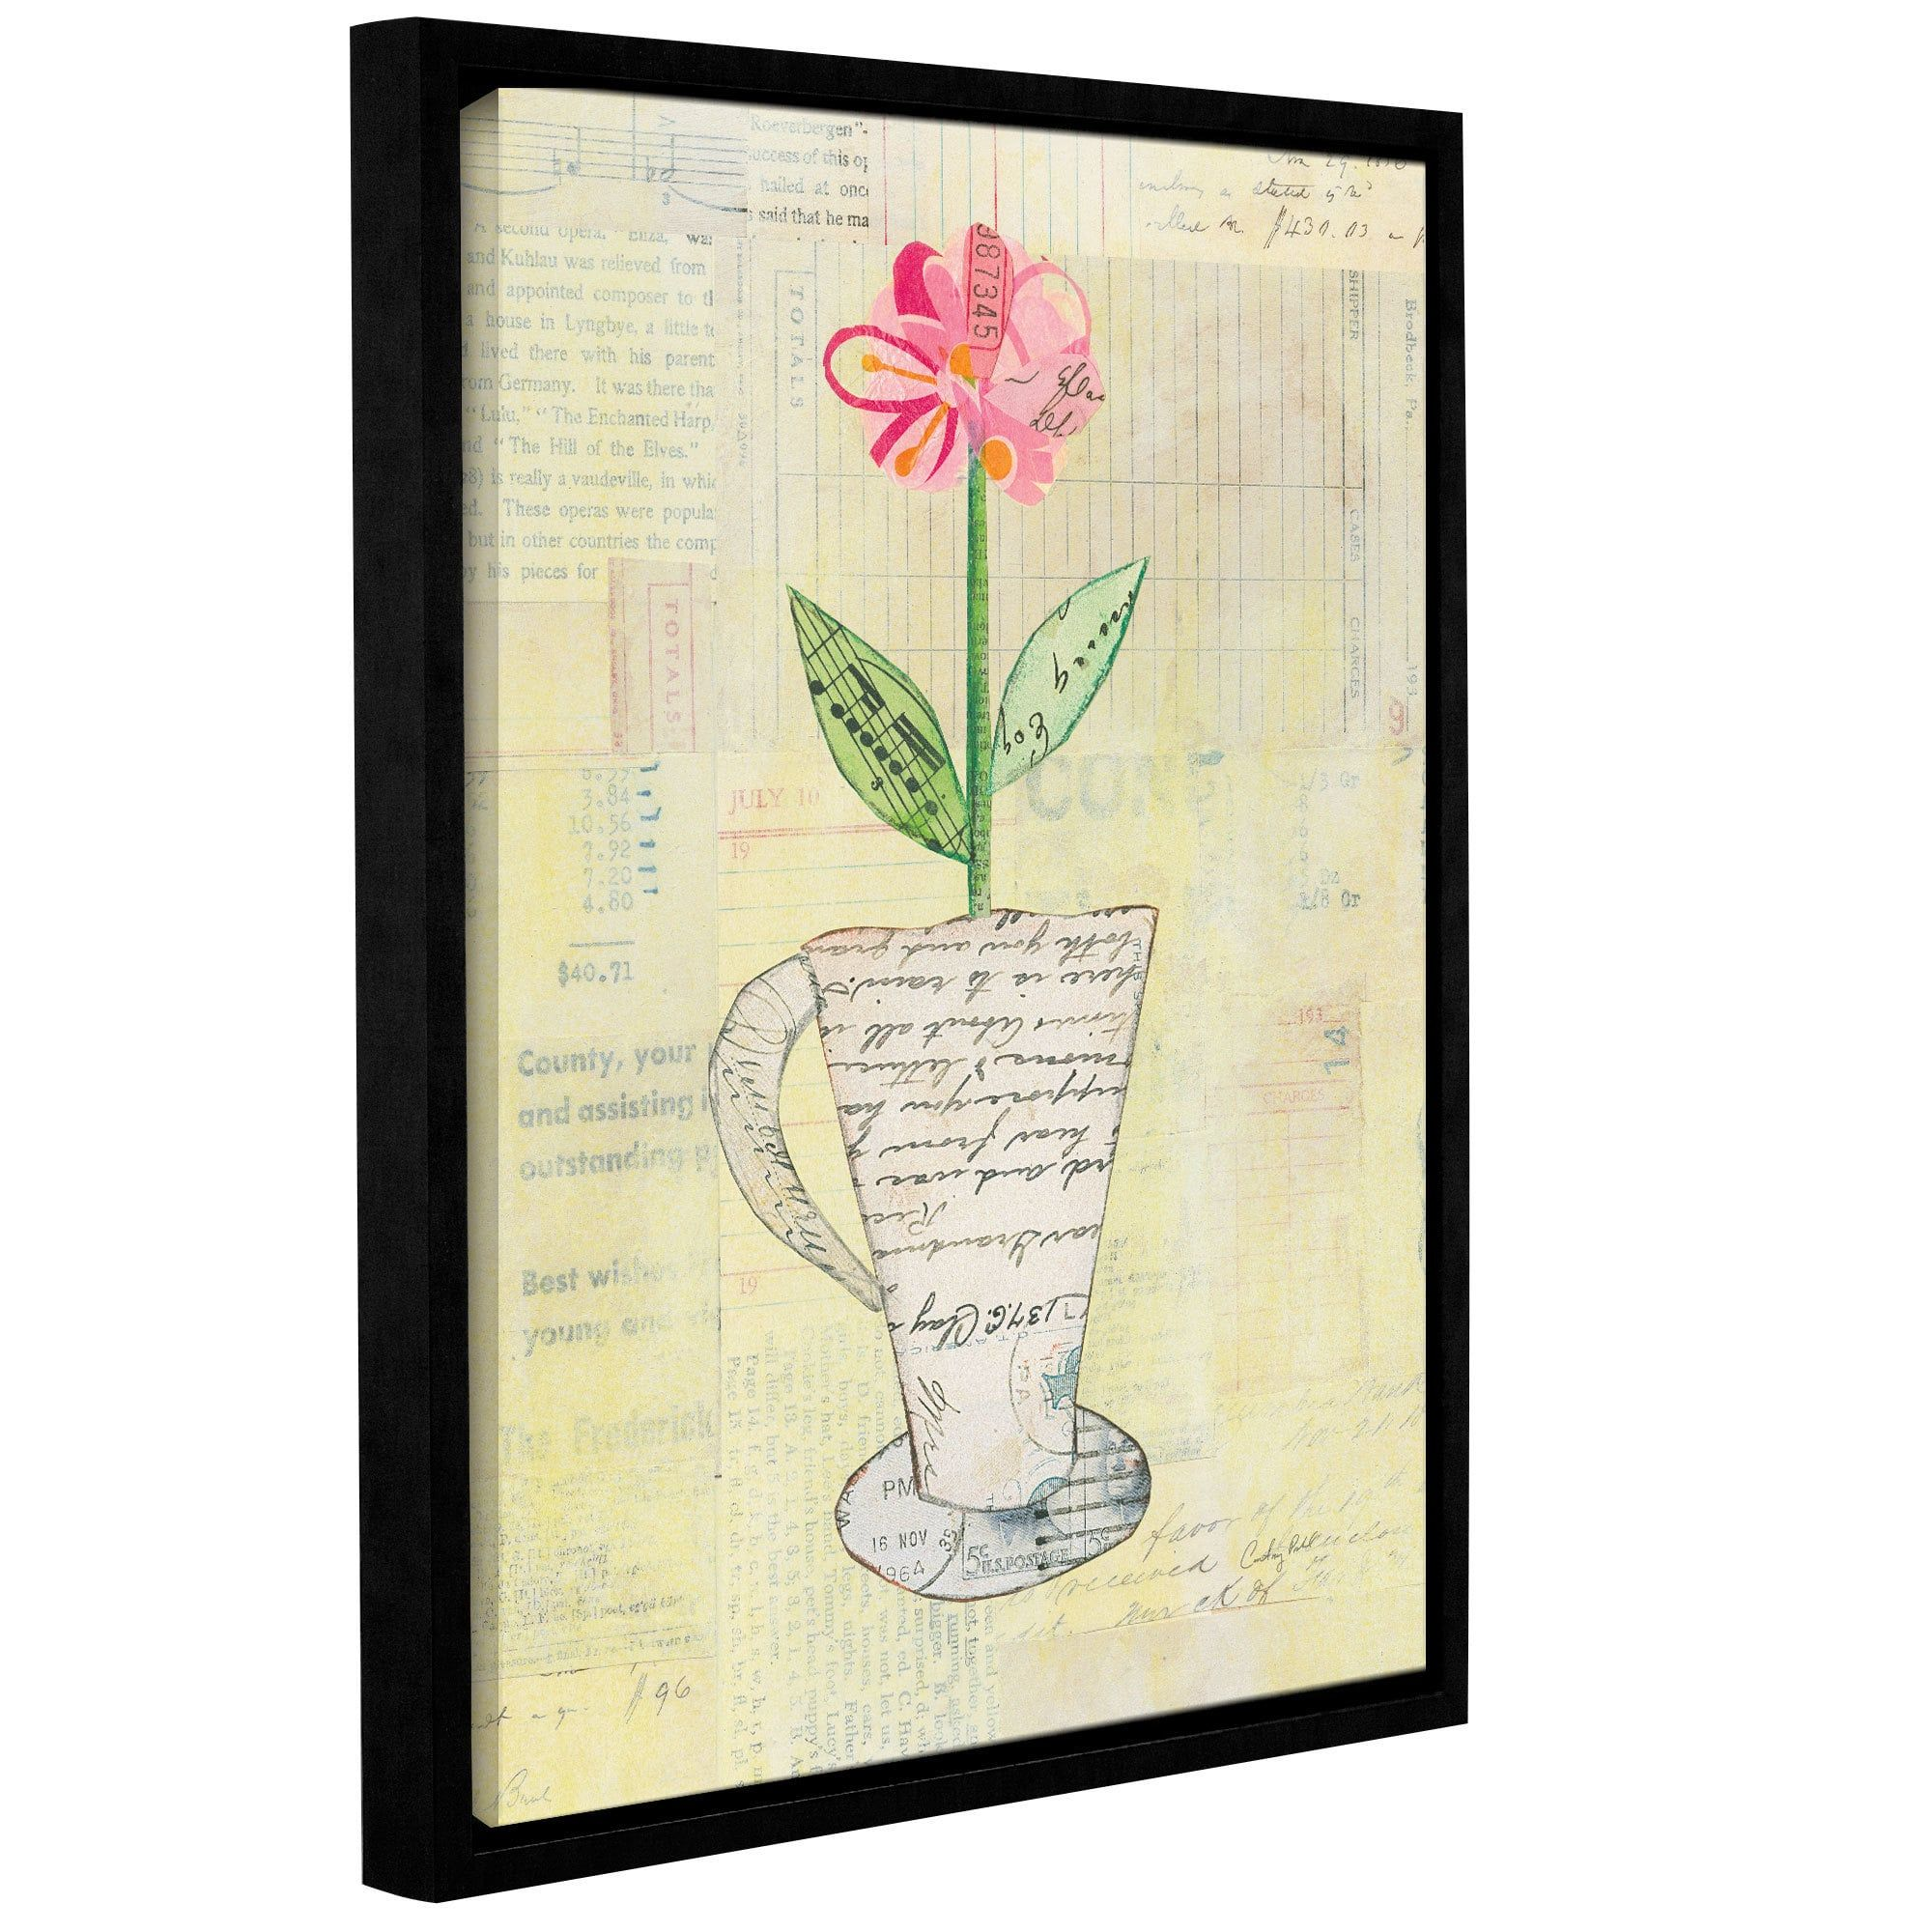 ArtWall Courtney Prahl's Teacup Floral II on Print, Gallery Wrapped Floater-framed Canvas